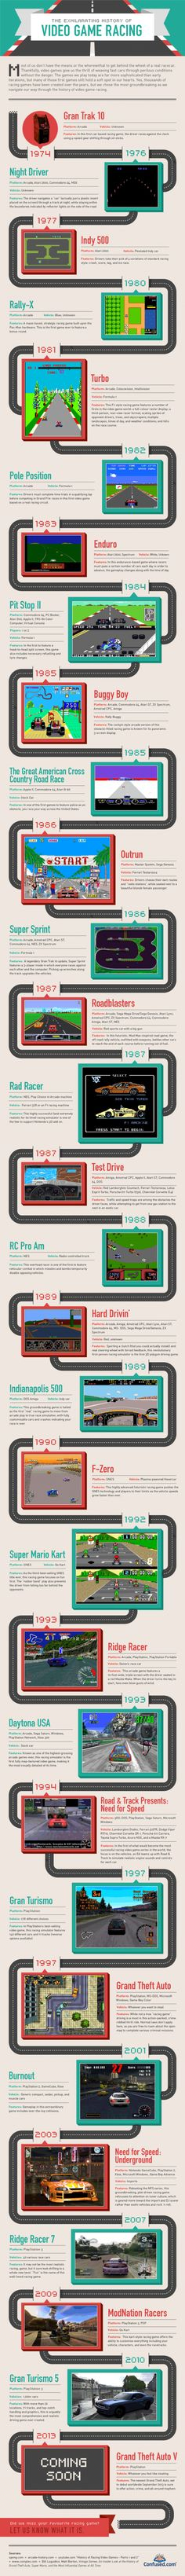 VROOM! VROOM! A BRIEF HISTORY OF VIDEO GAME DRIVING